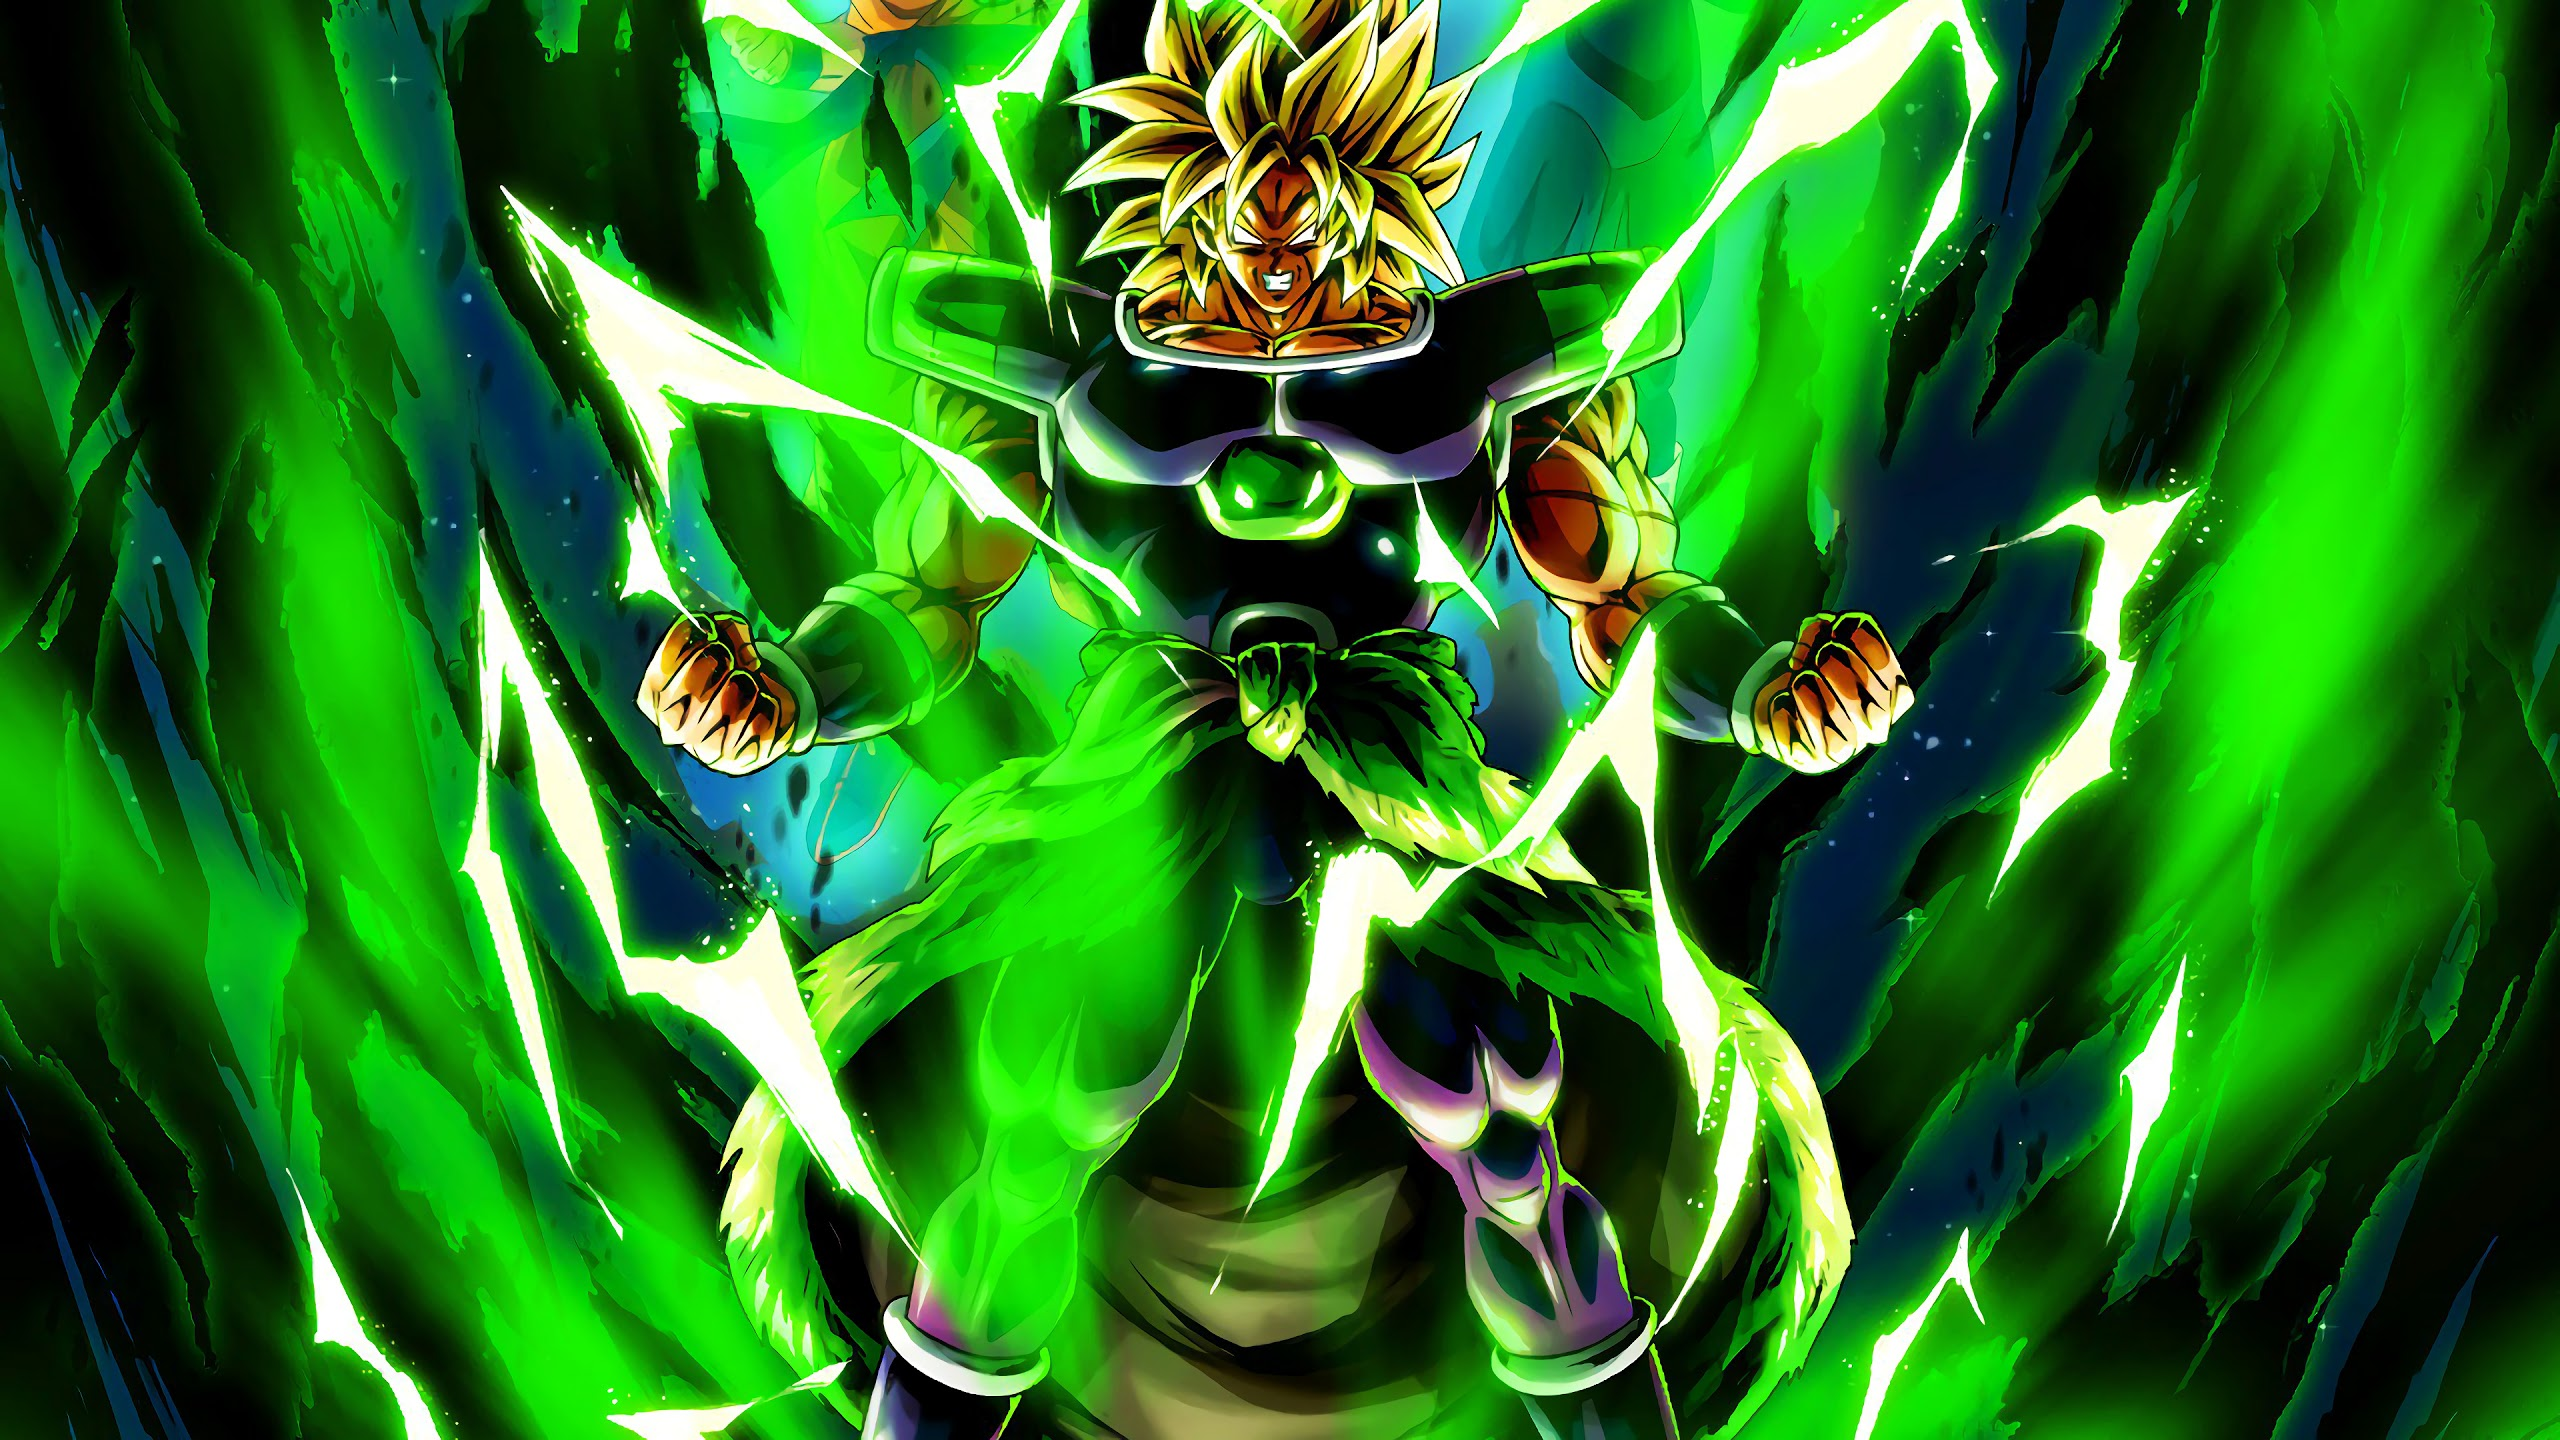 24 Dragon Ball Super Broly Hd Wallpapers On Wallpapersafari